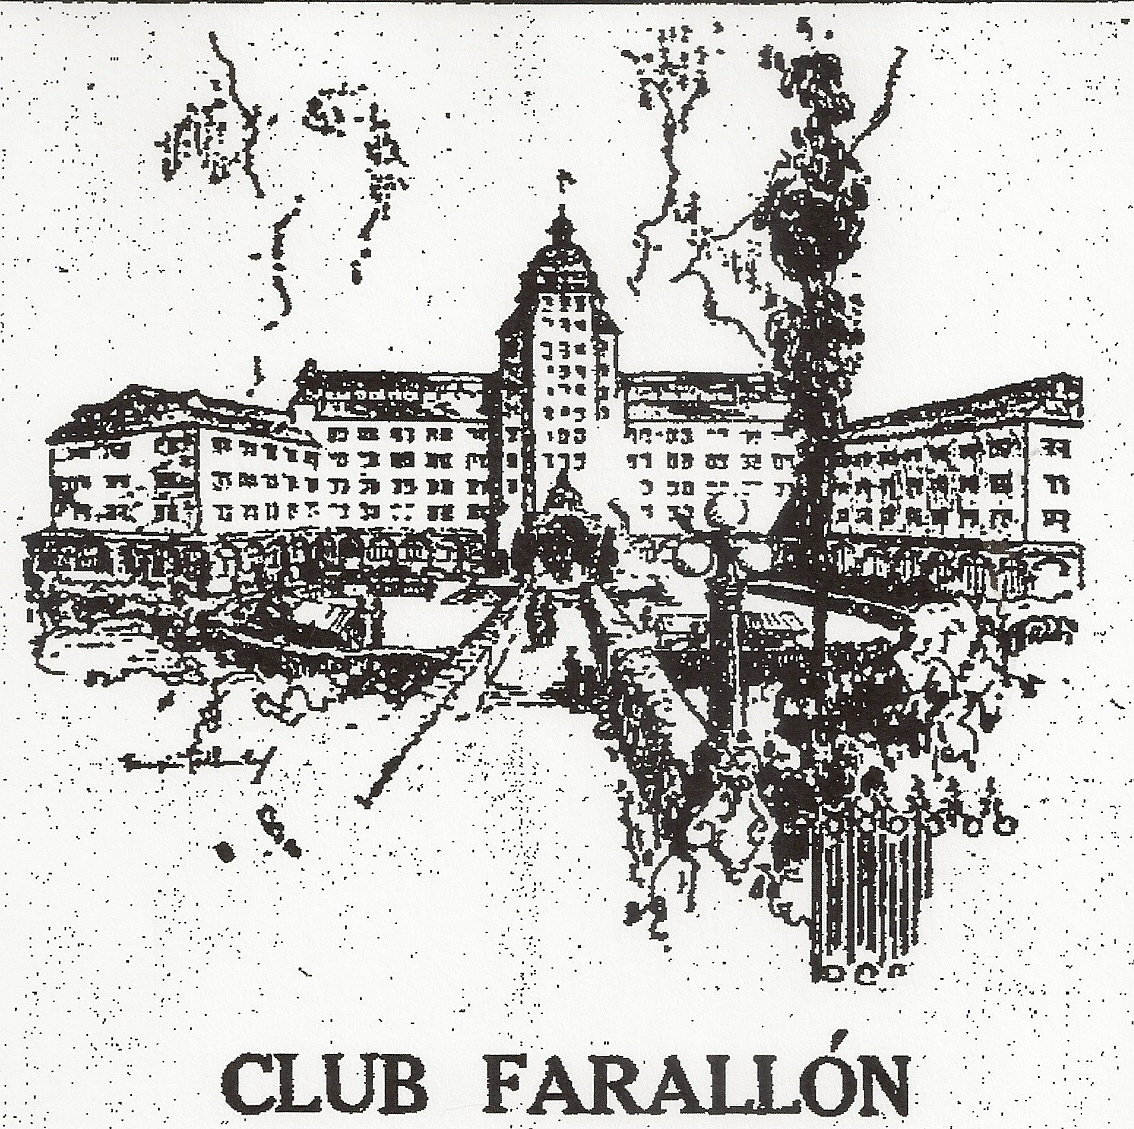 Pacific Edgewater Club Farallon first rendering in the SFChron July 15 1926